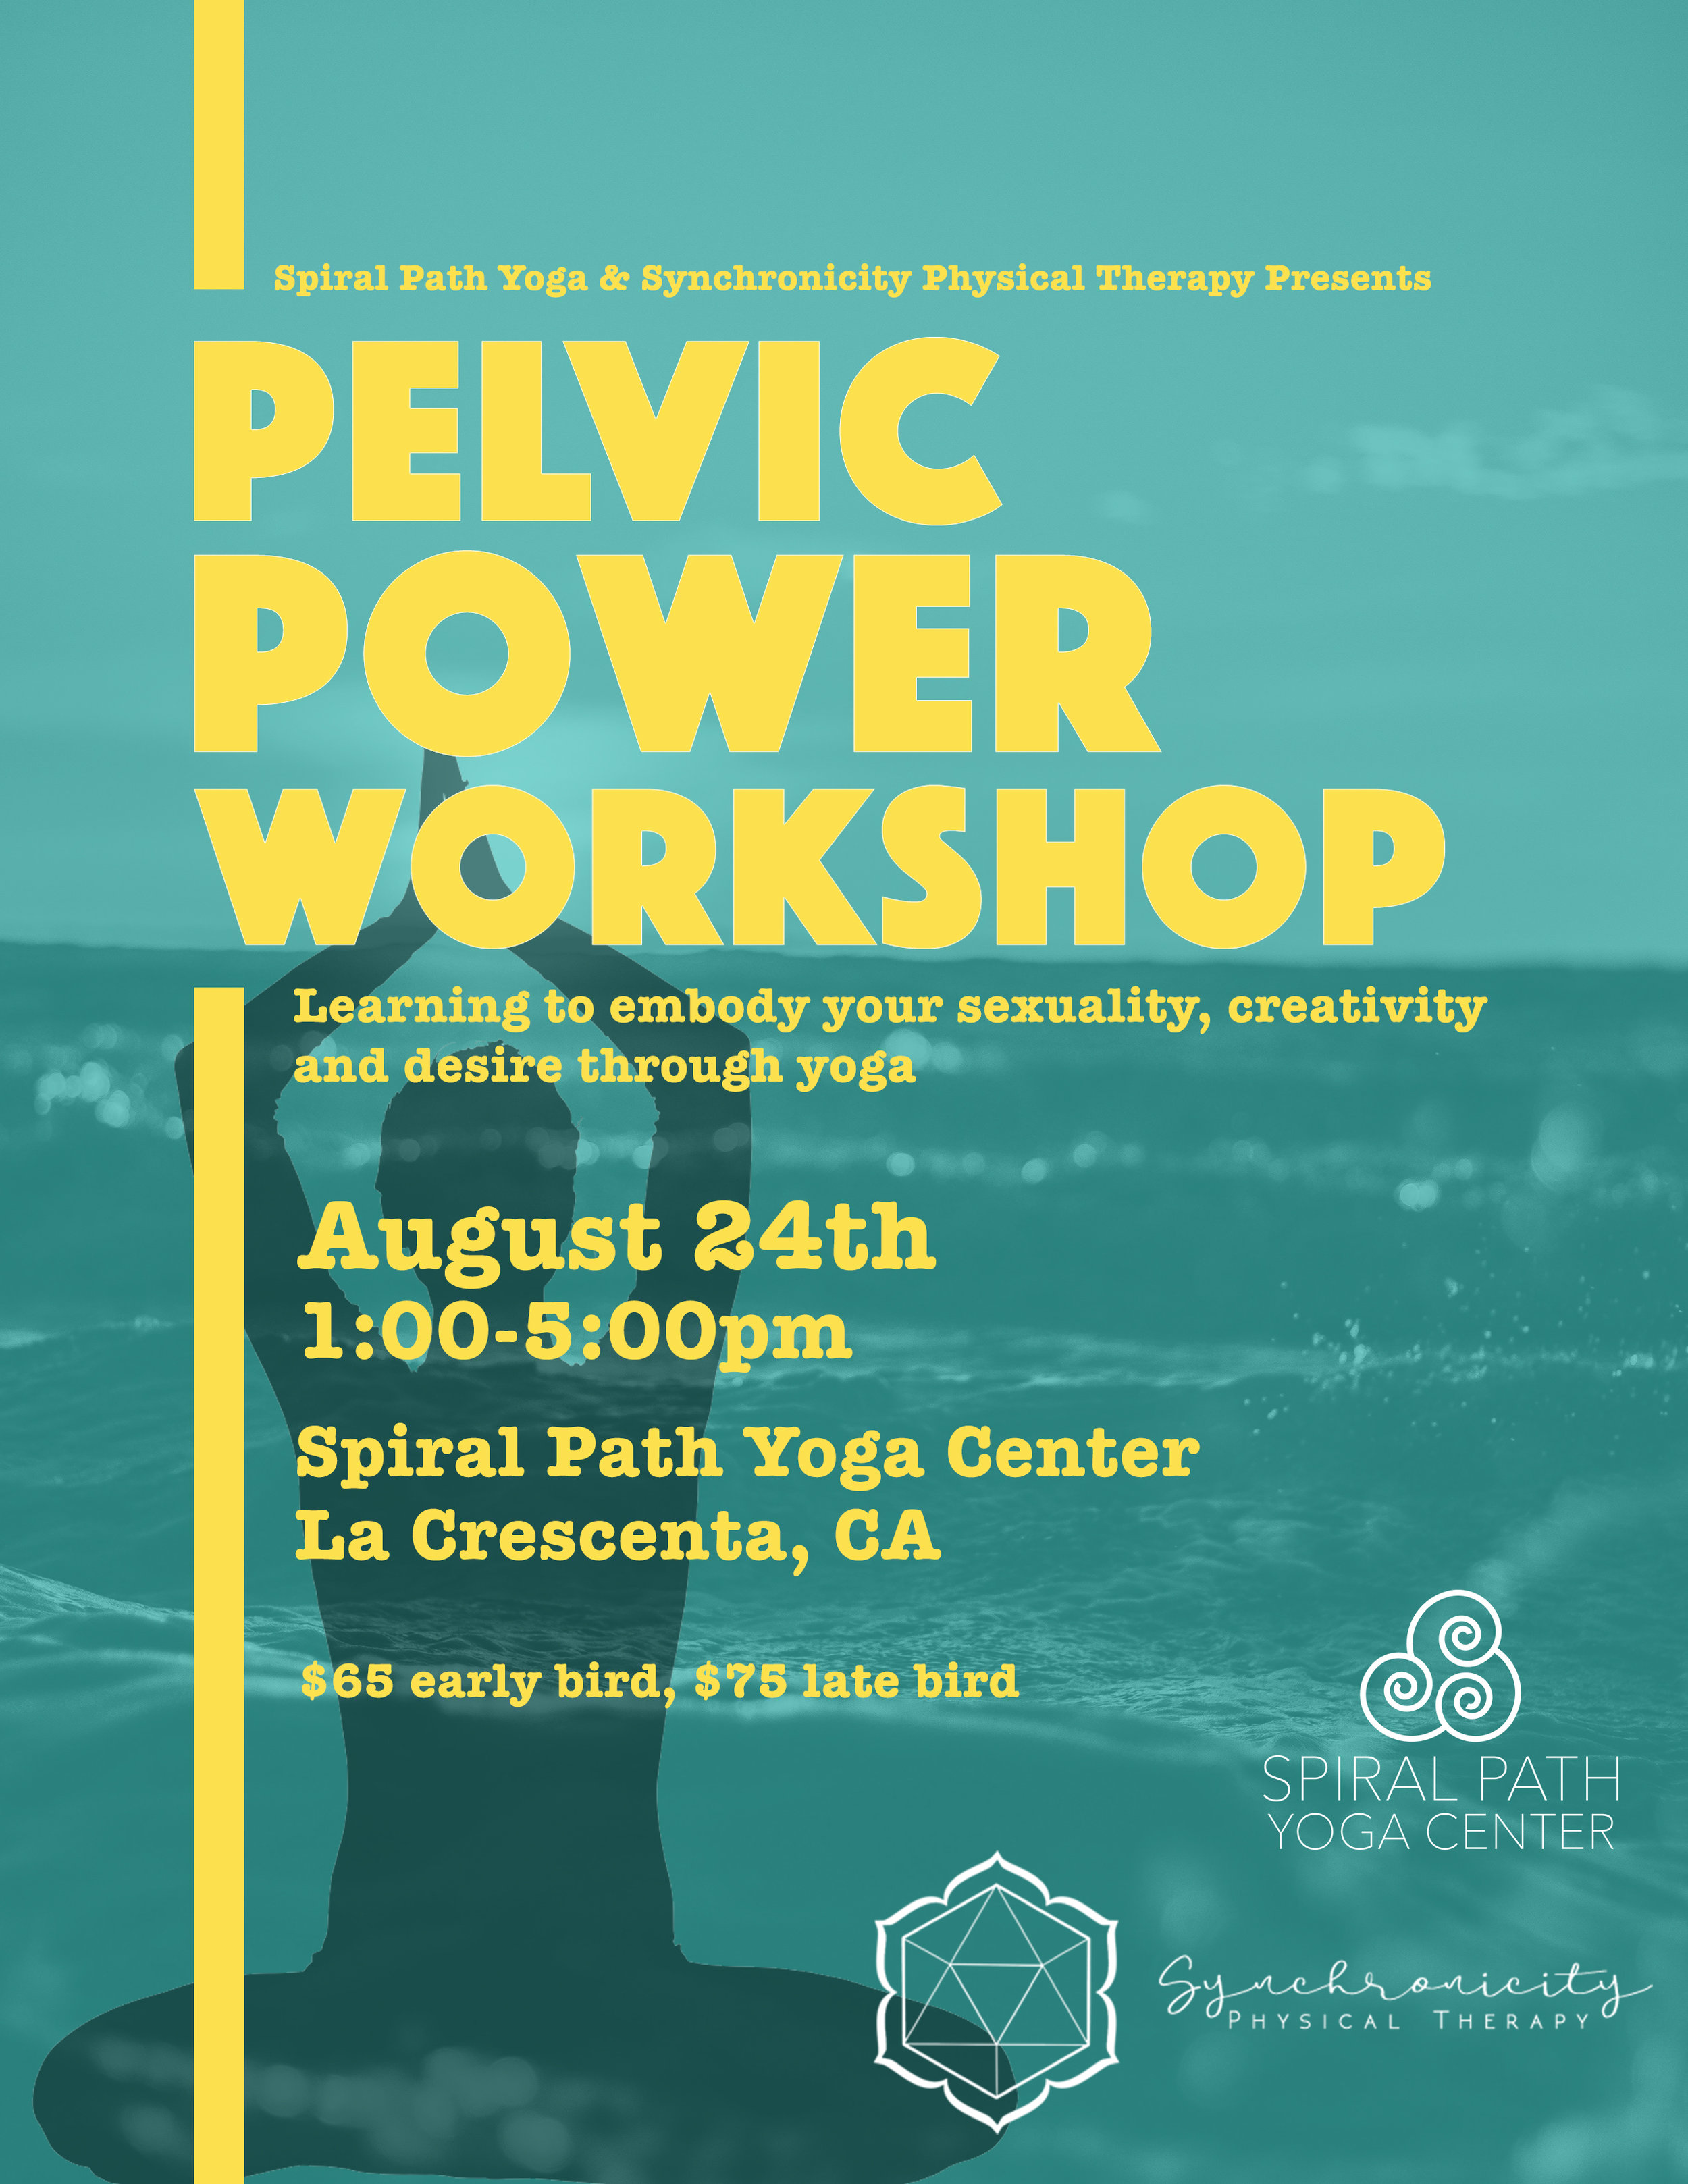 Pelvic Power Workshop.jpg